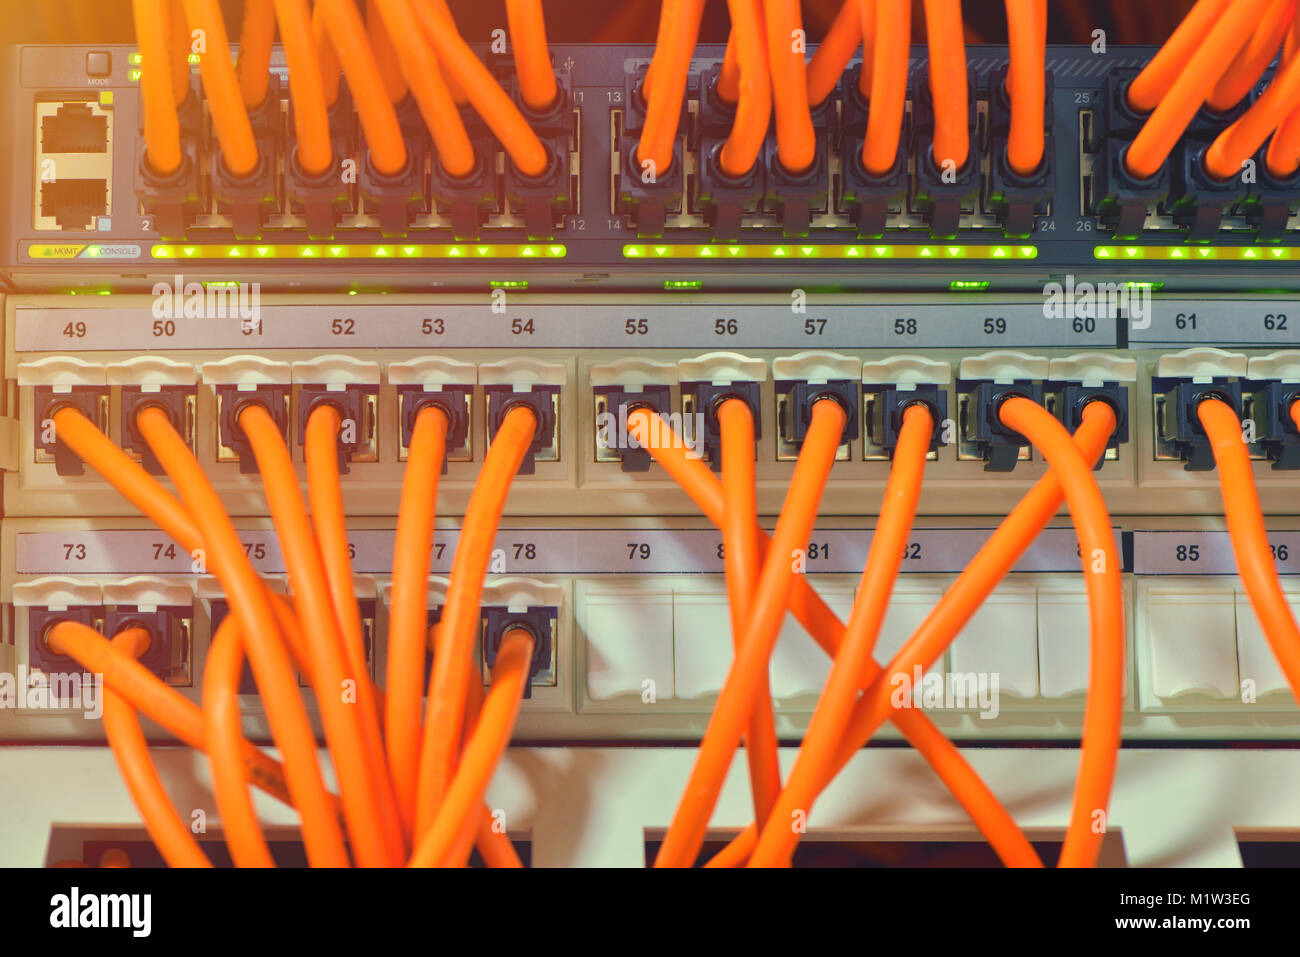 Information Technology Computer Network, Telecommunication Ethernet Cables Connected to Internet Switch. Stock Photo